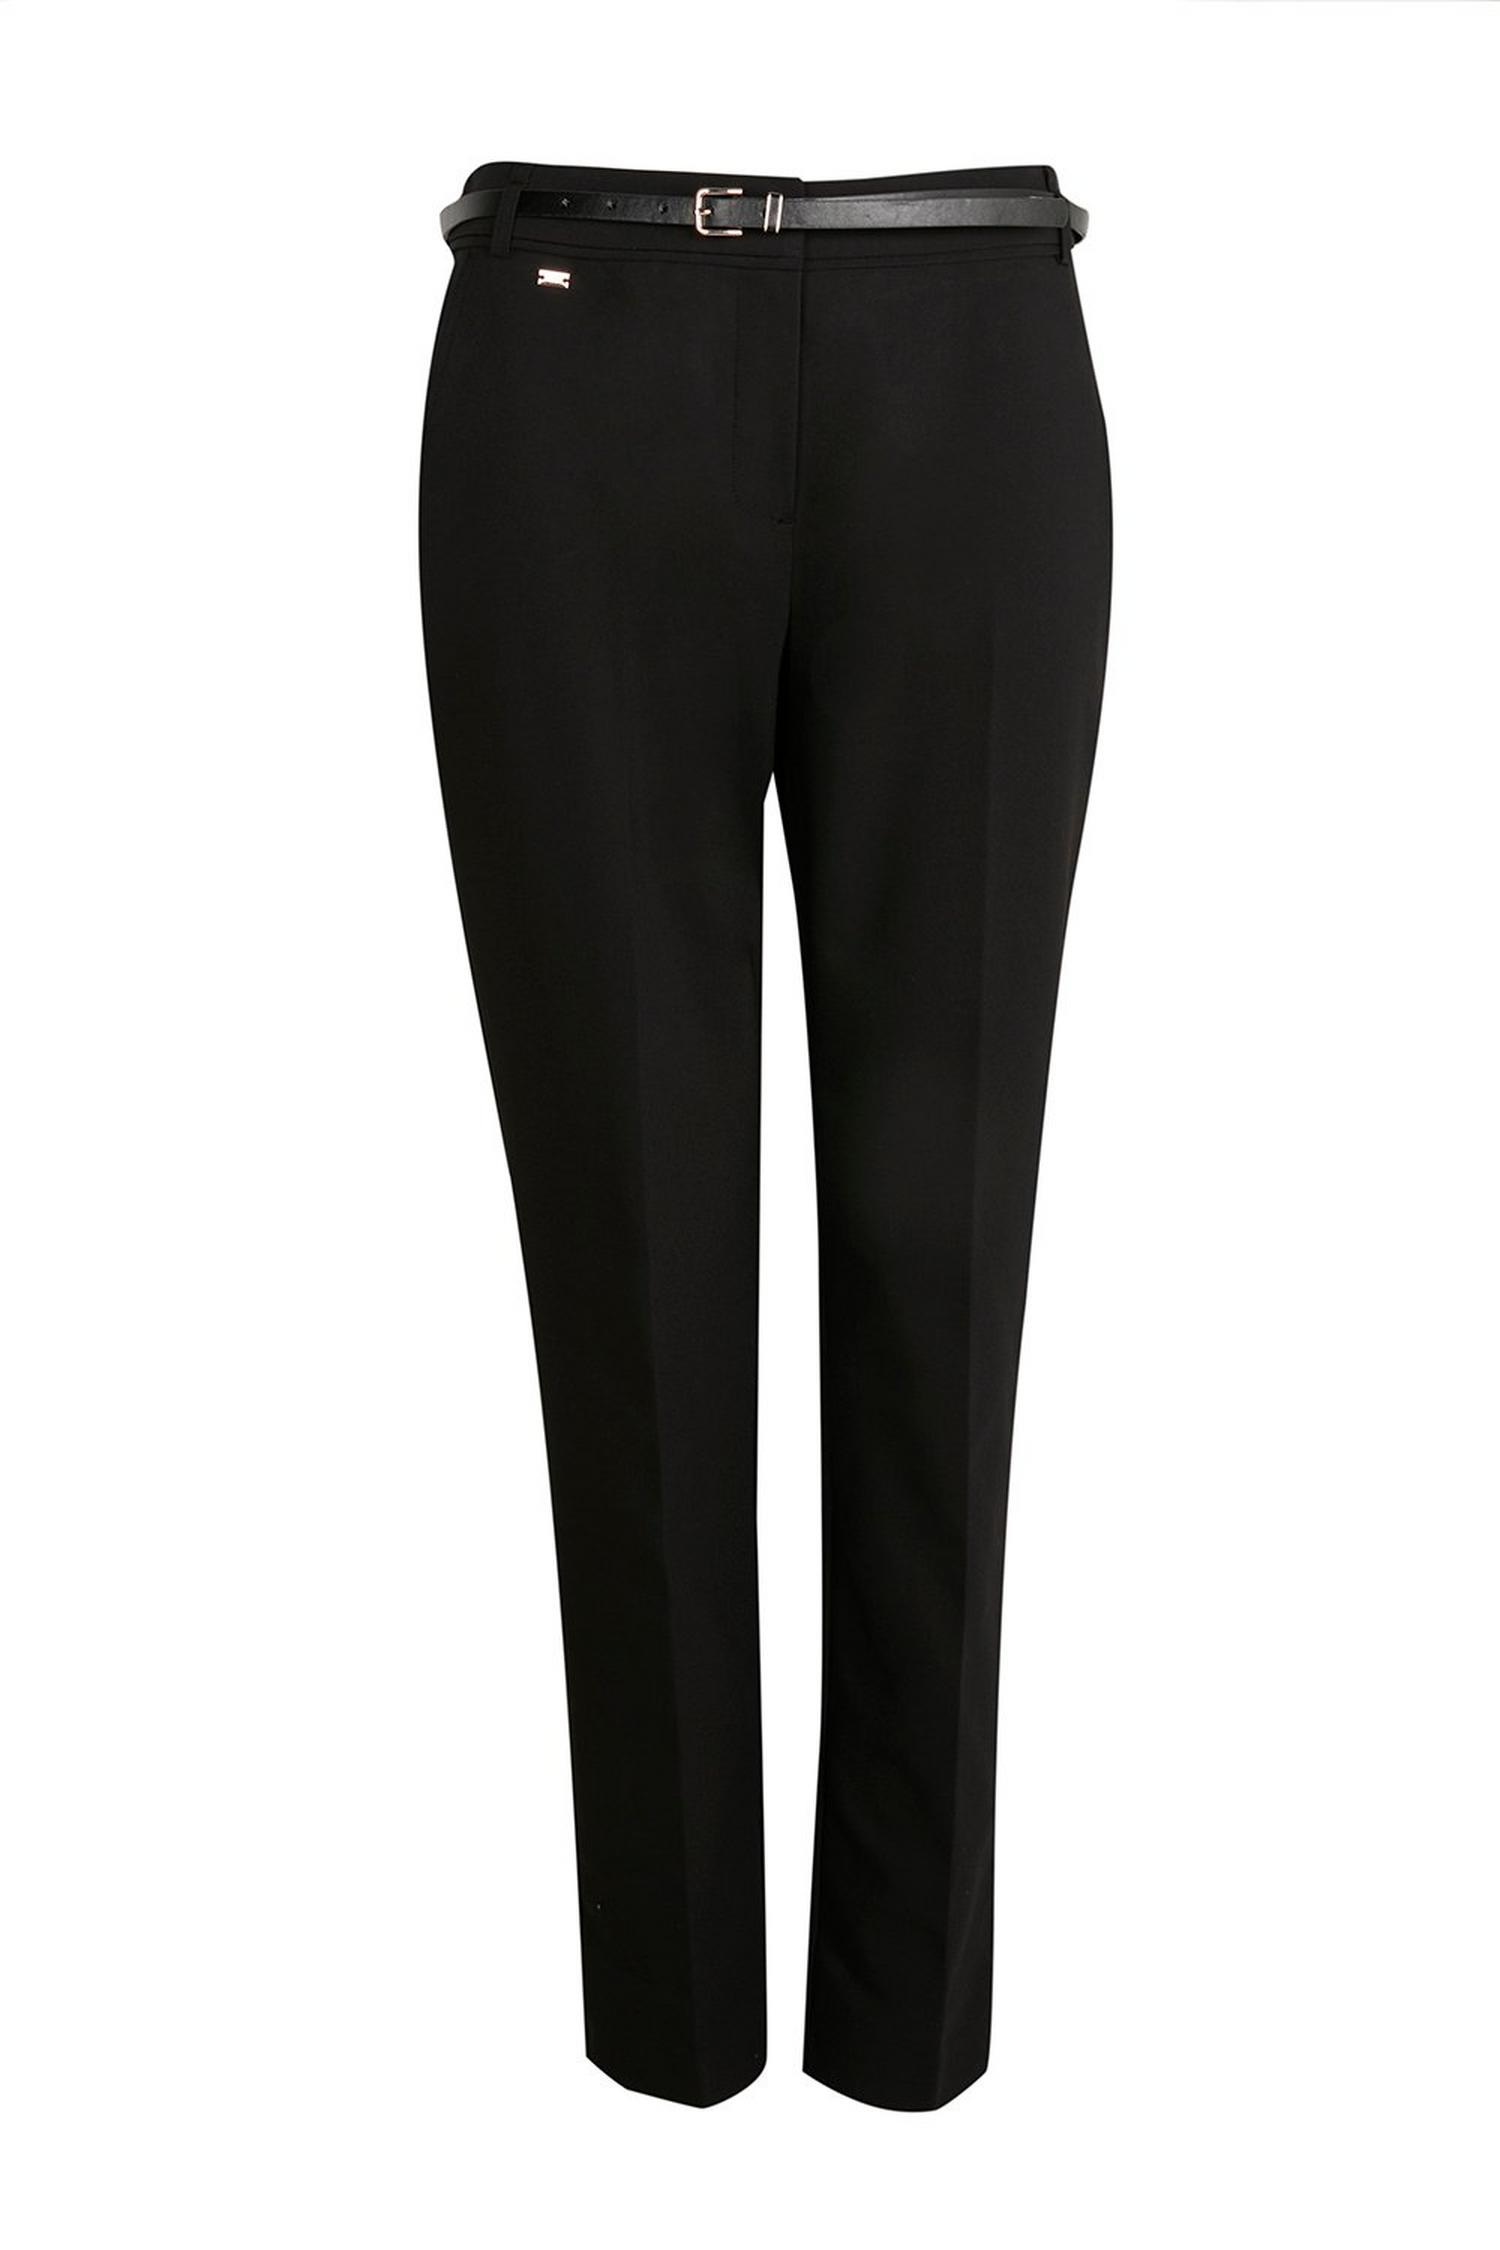 105 PETITE Black Belted Cigarette Trouser image number 2